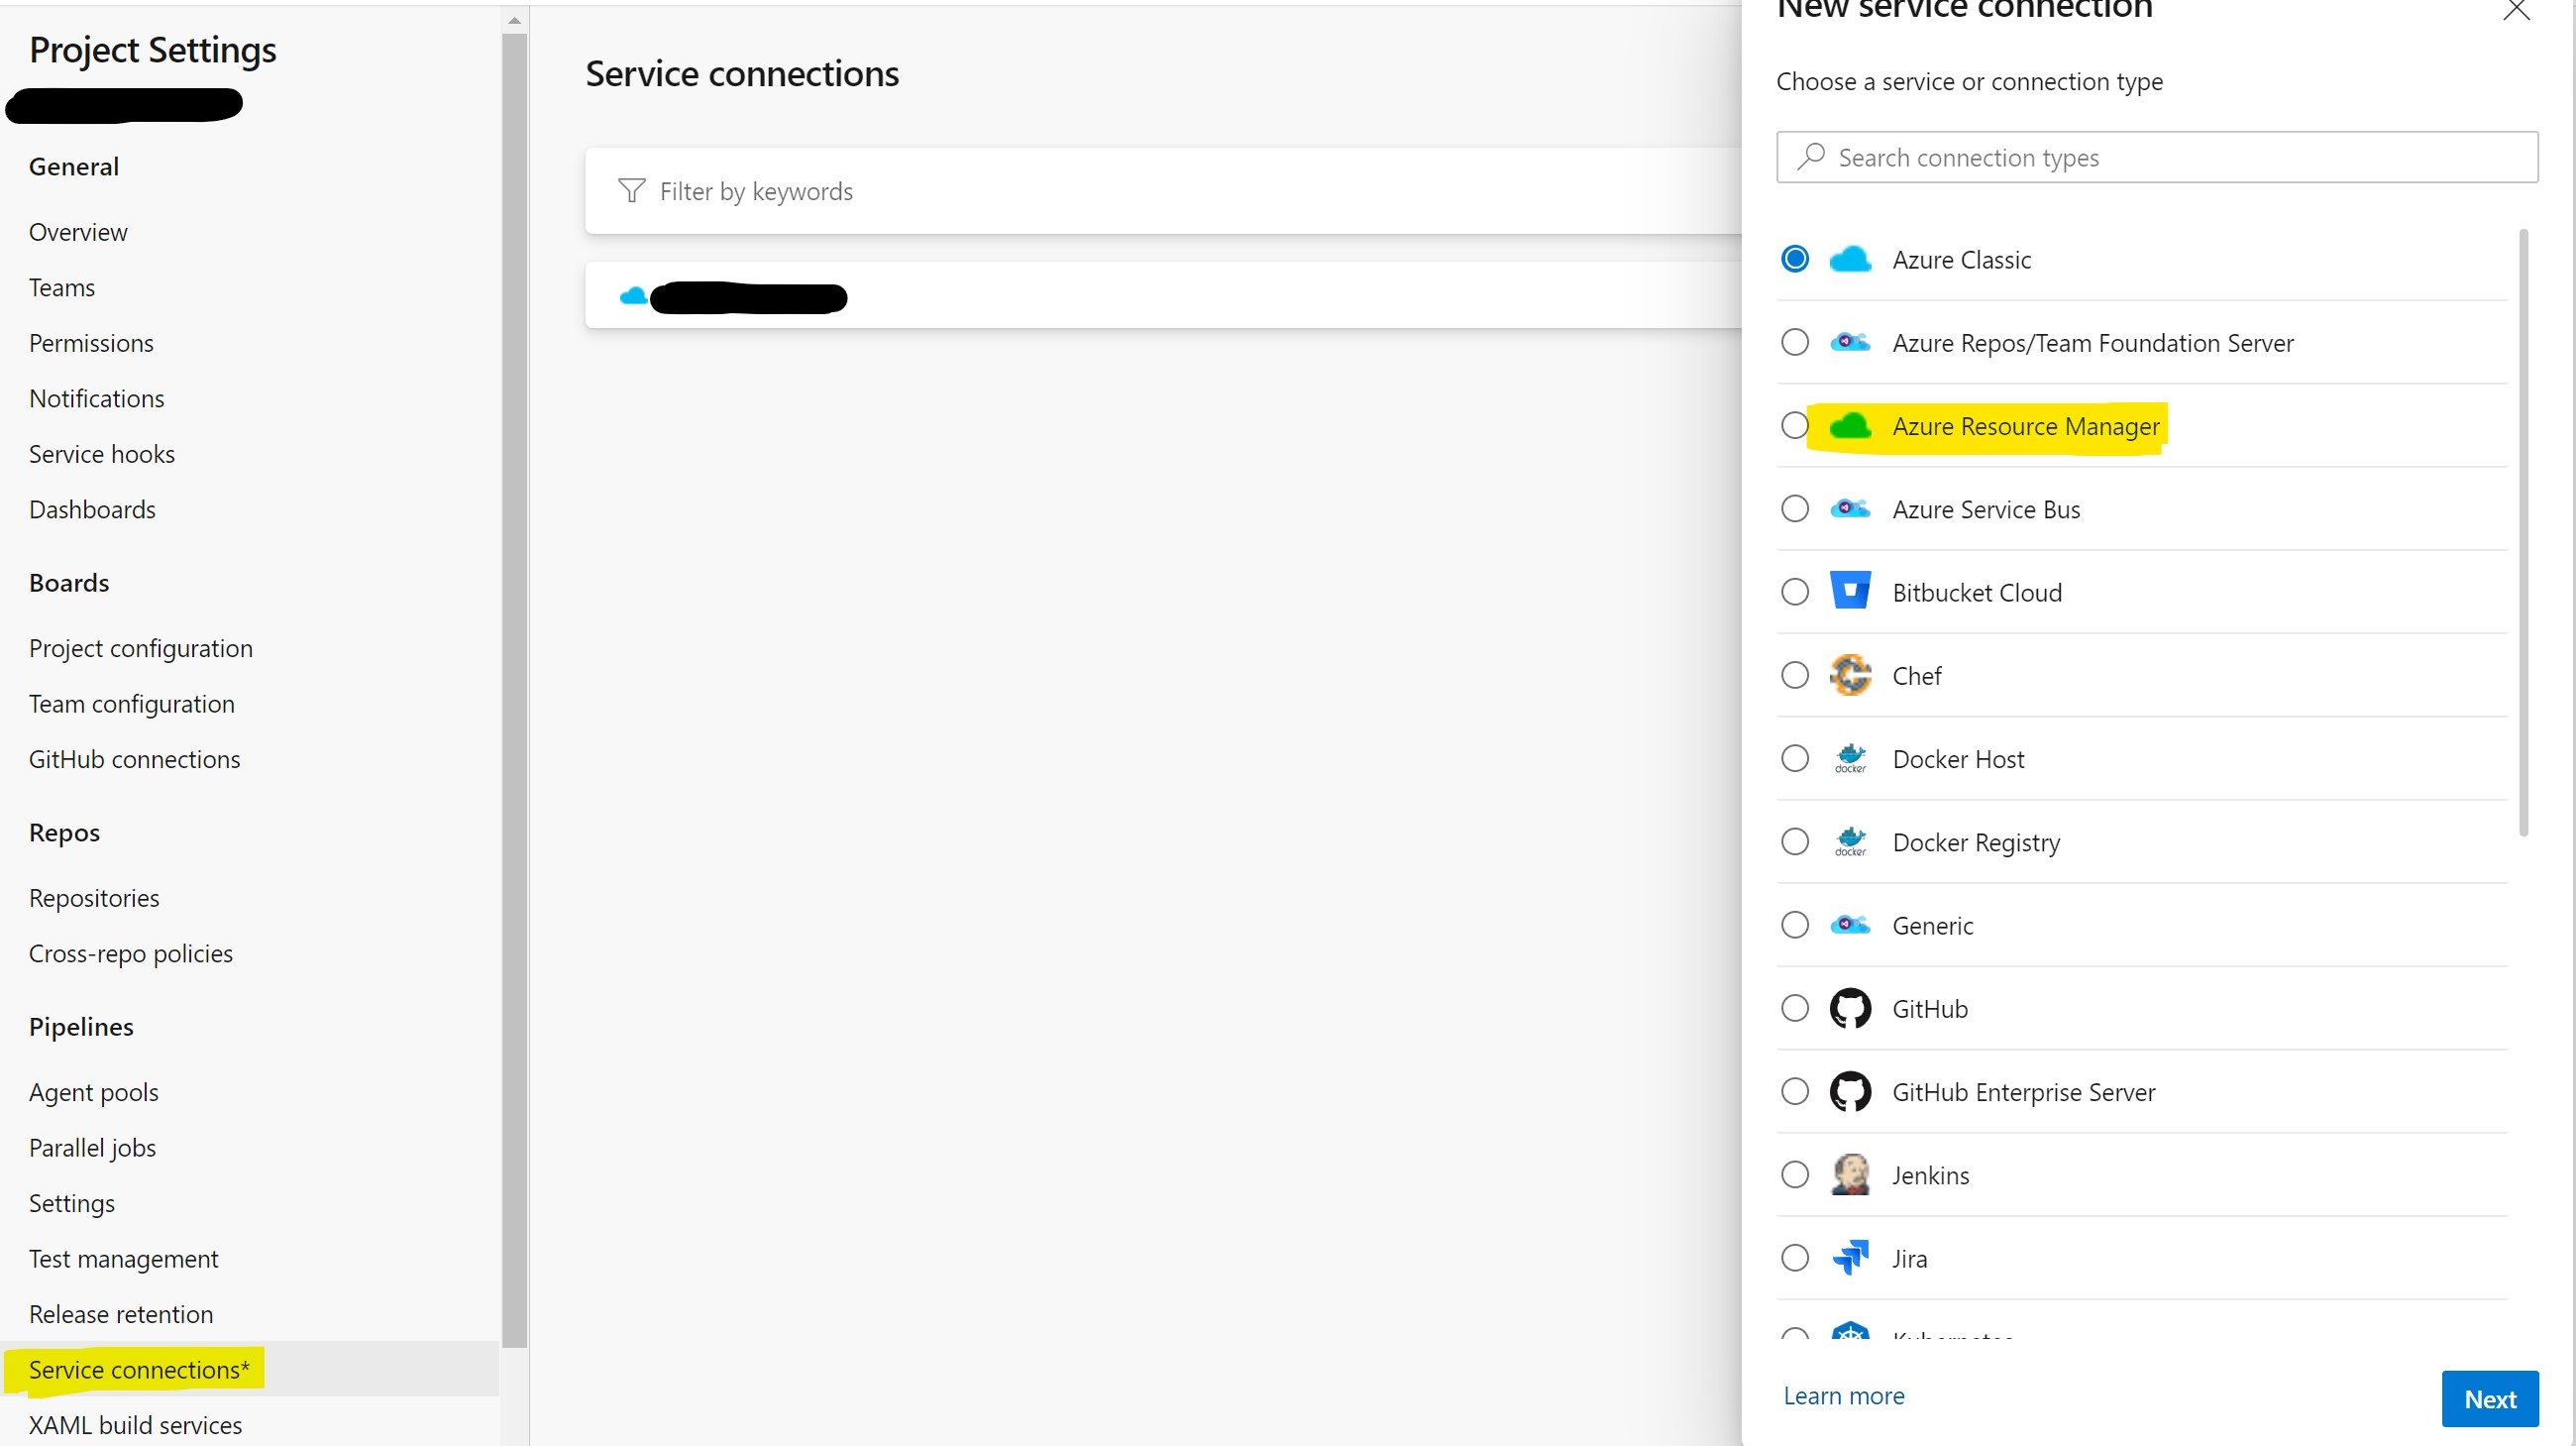 Create a new Service connection in Azure DevOps